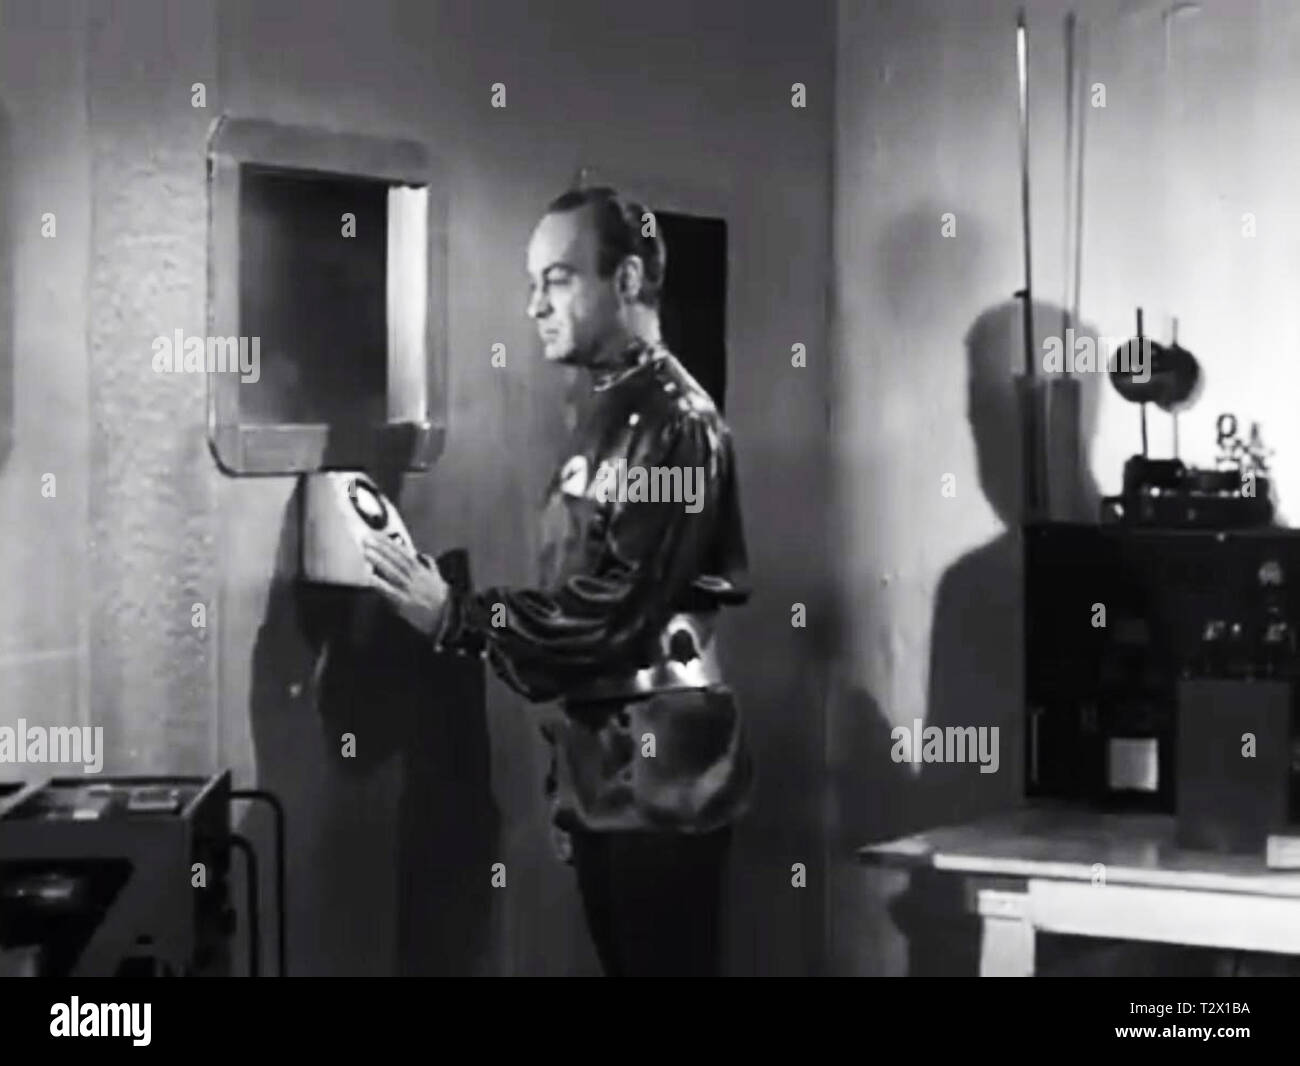 The Aliens from Plan 9 from Outer Space - Stock Image